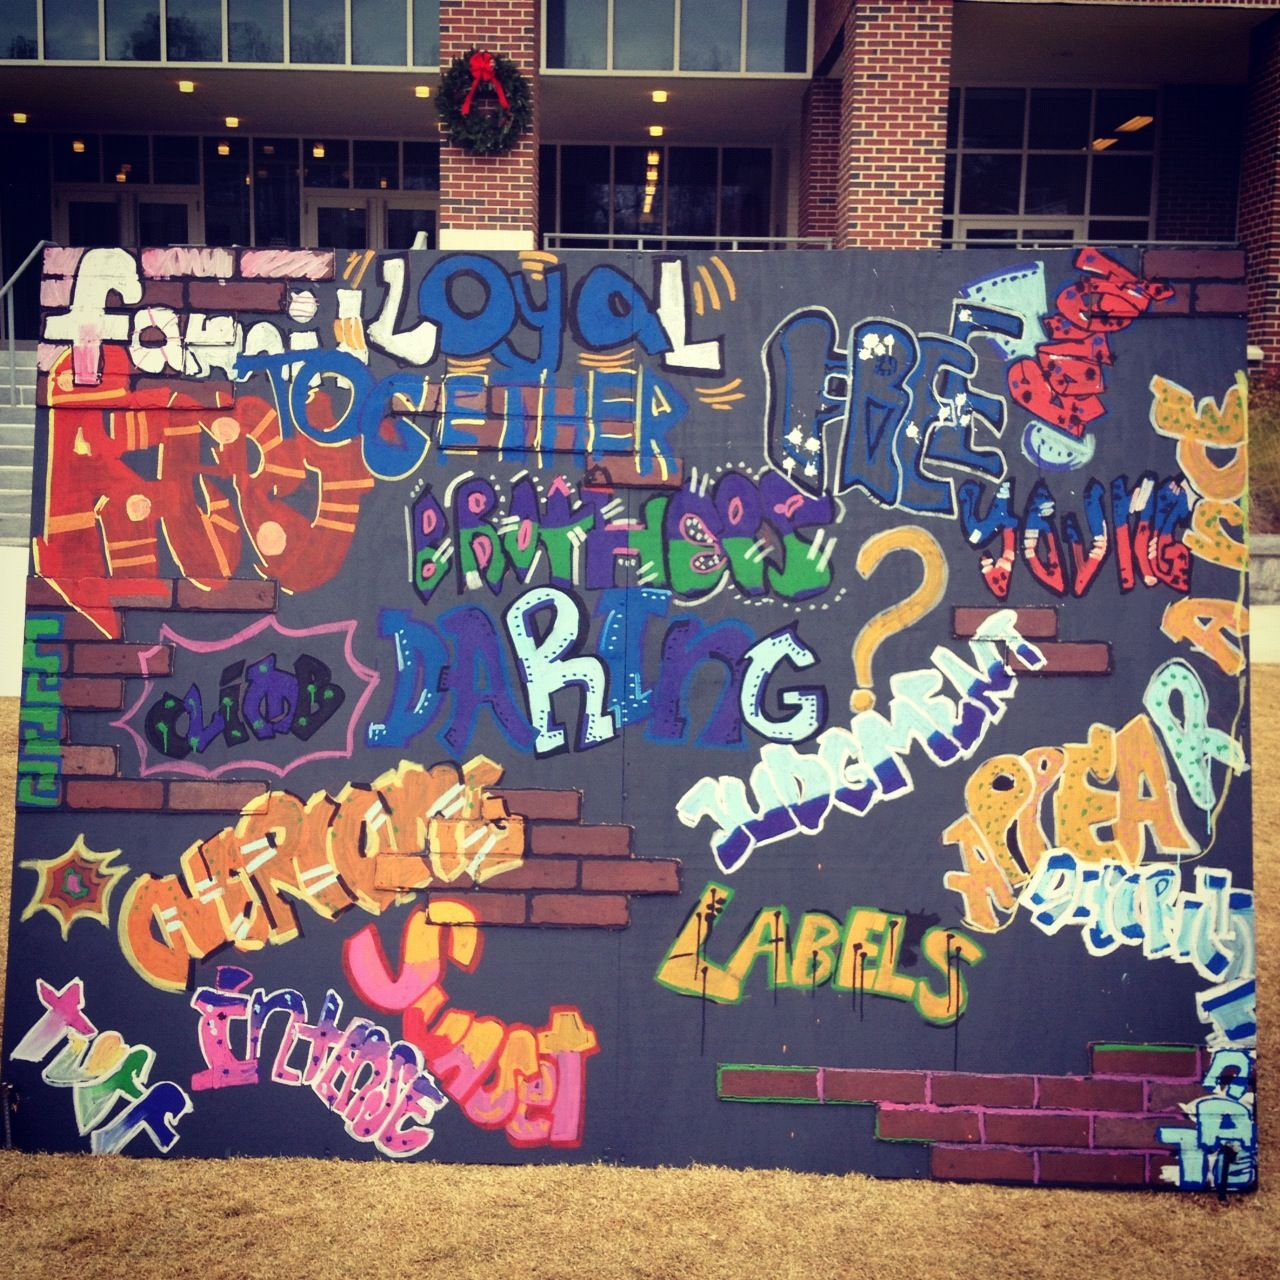 Graffiti wall training - Middle School Graffiti Wall Expresses Literary Themes From The Outsiders